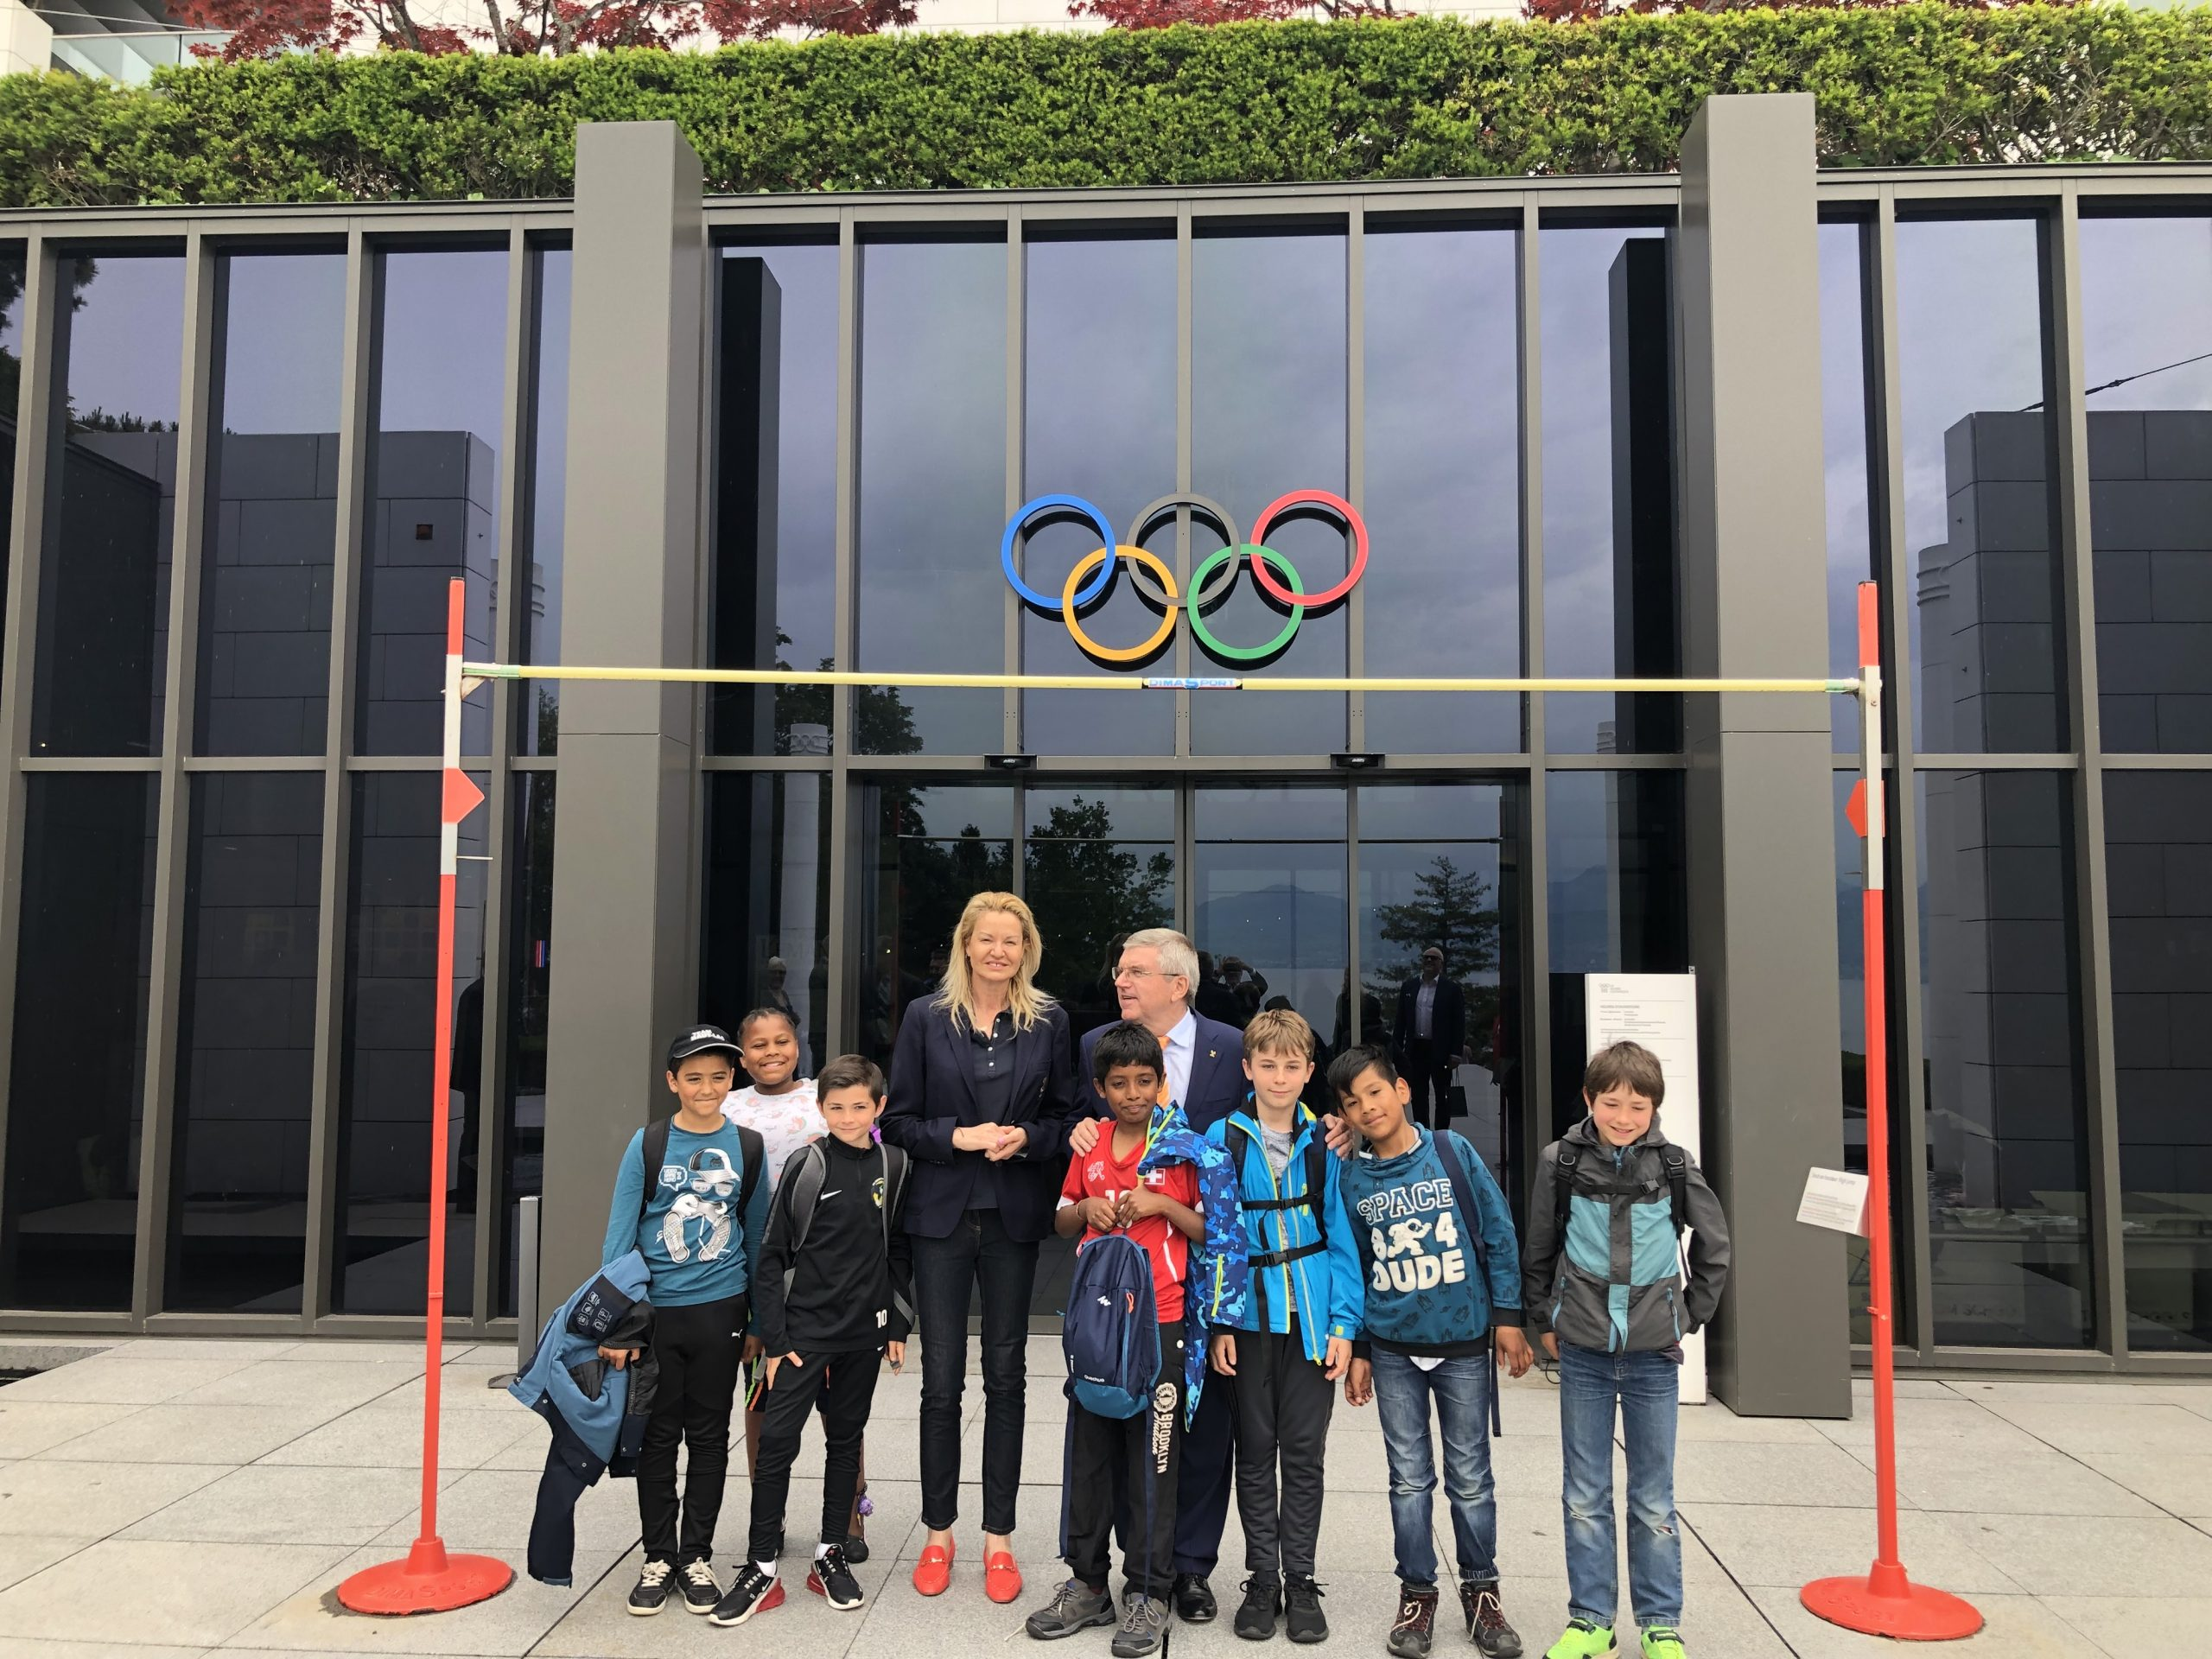 OLYMPIC MUSEUM MAIN ENTRY 209 BAR